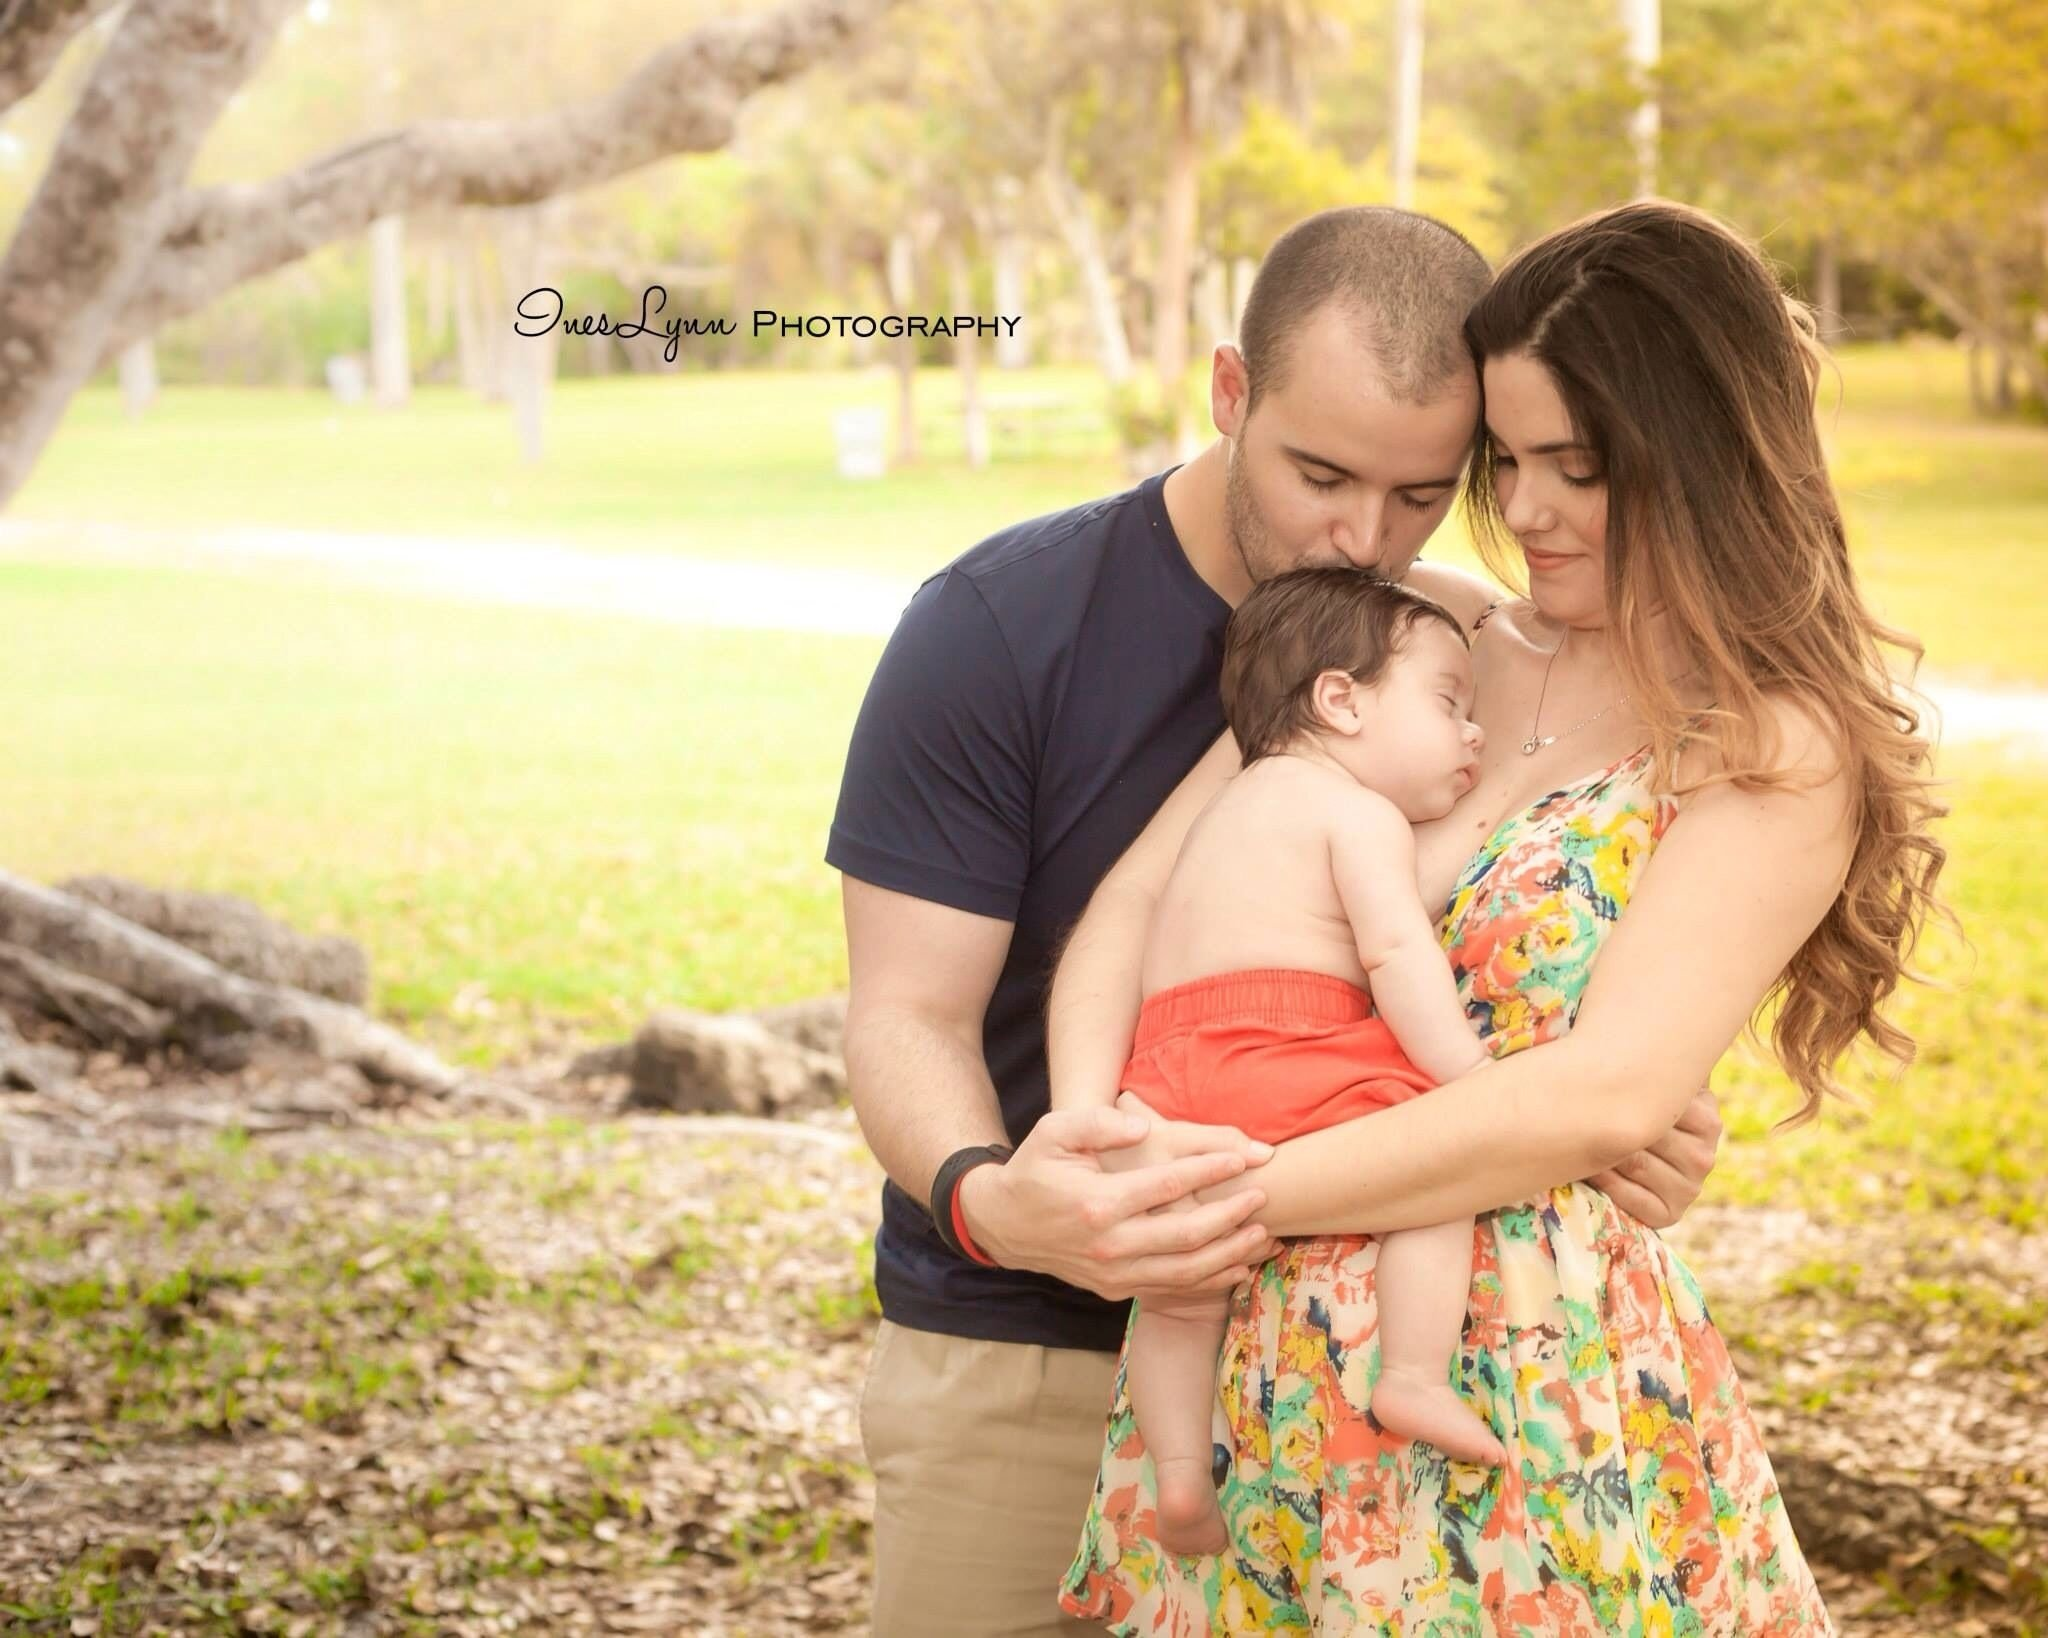 10 Lovable Family Of 3 Picture Ideas baby boy photography 3 months old baby photo ideas outdoor 9 2020